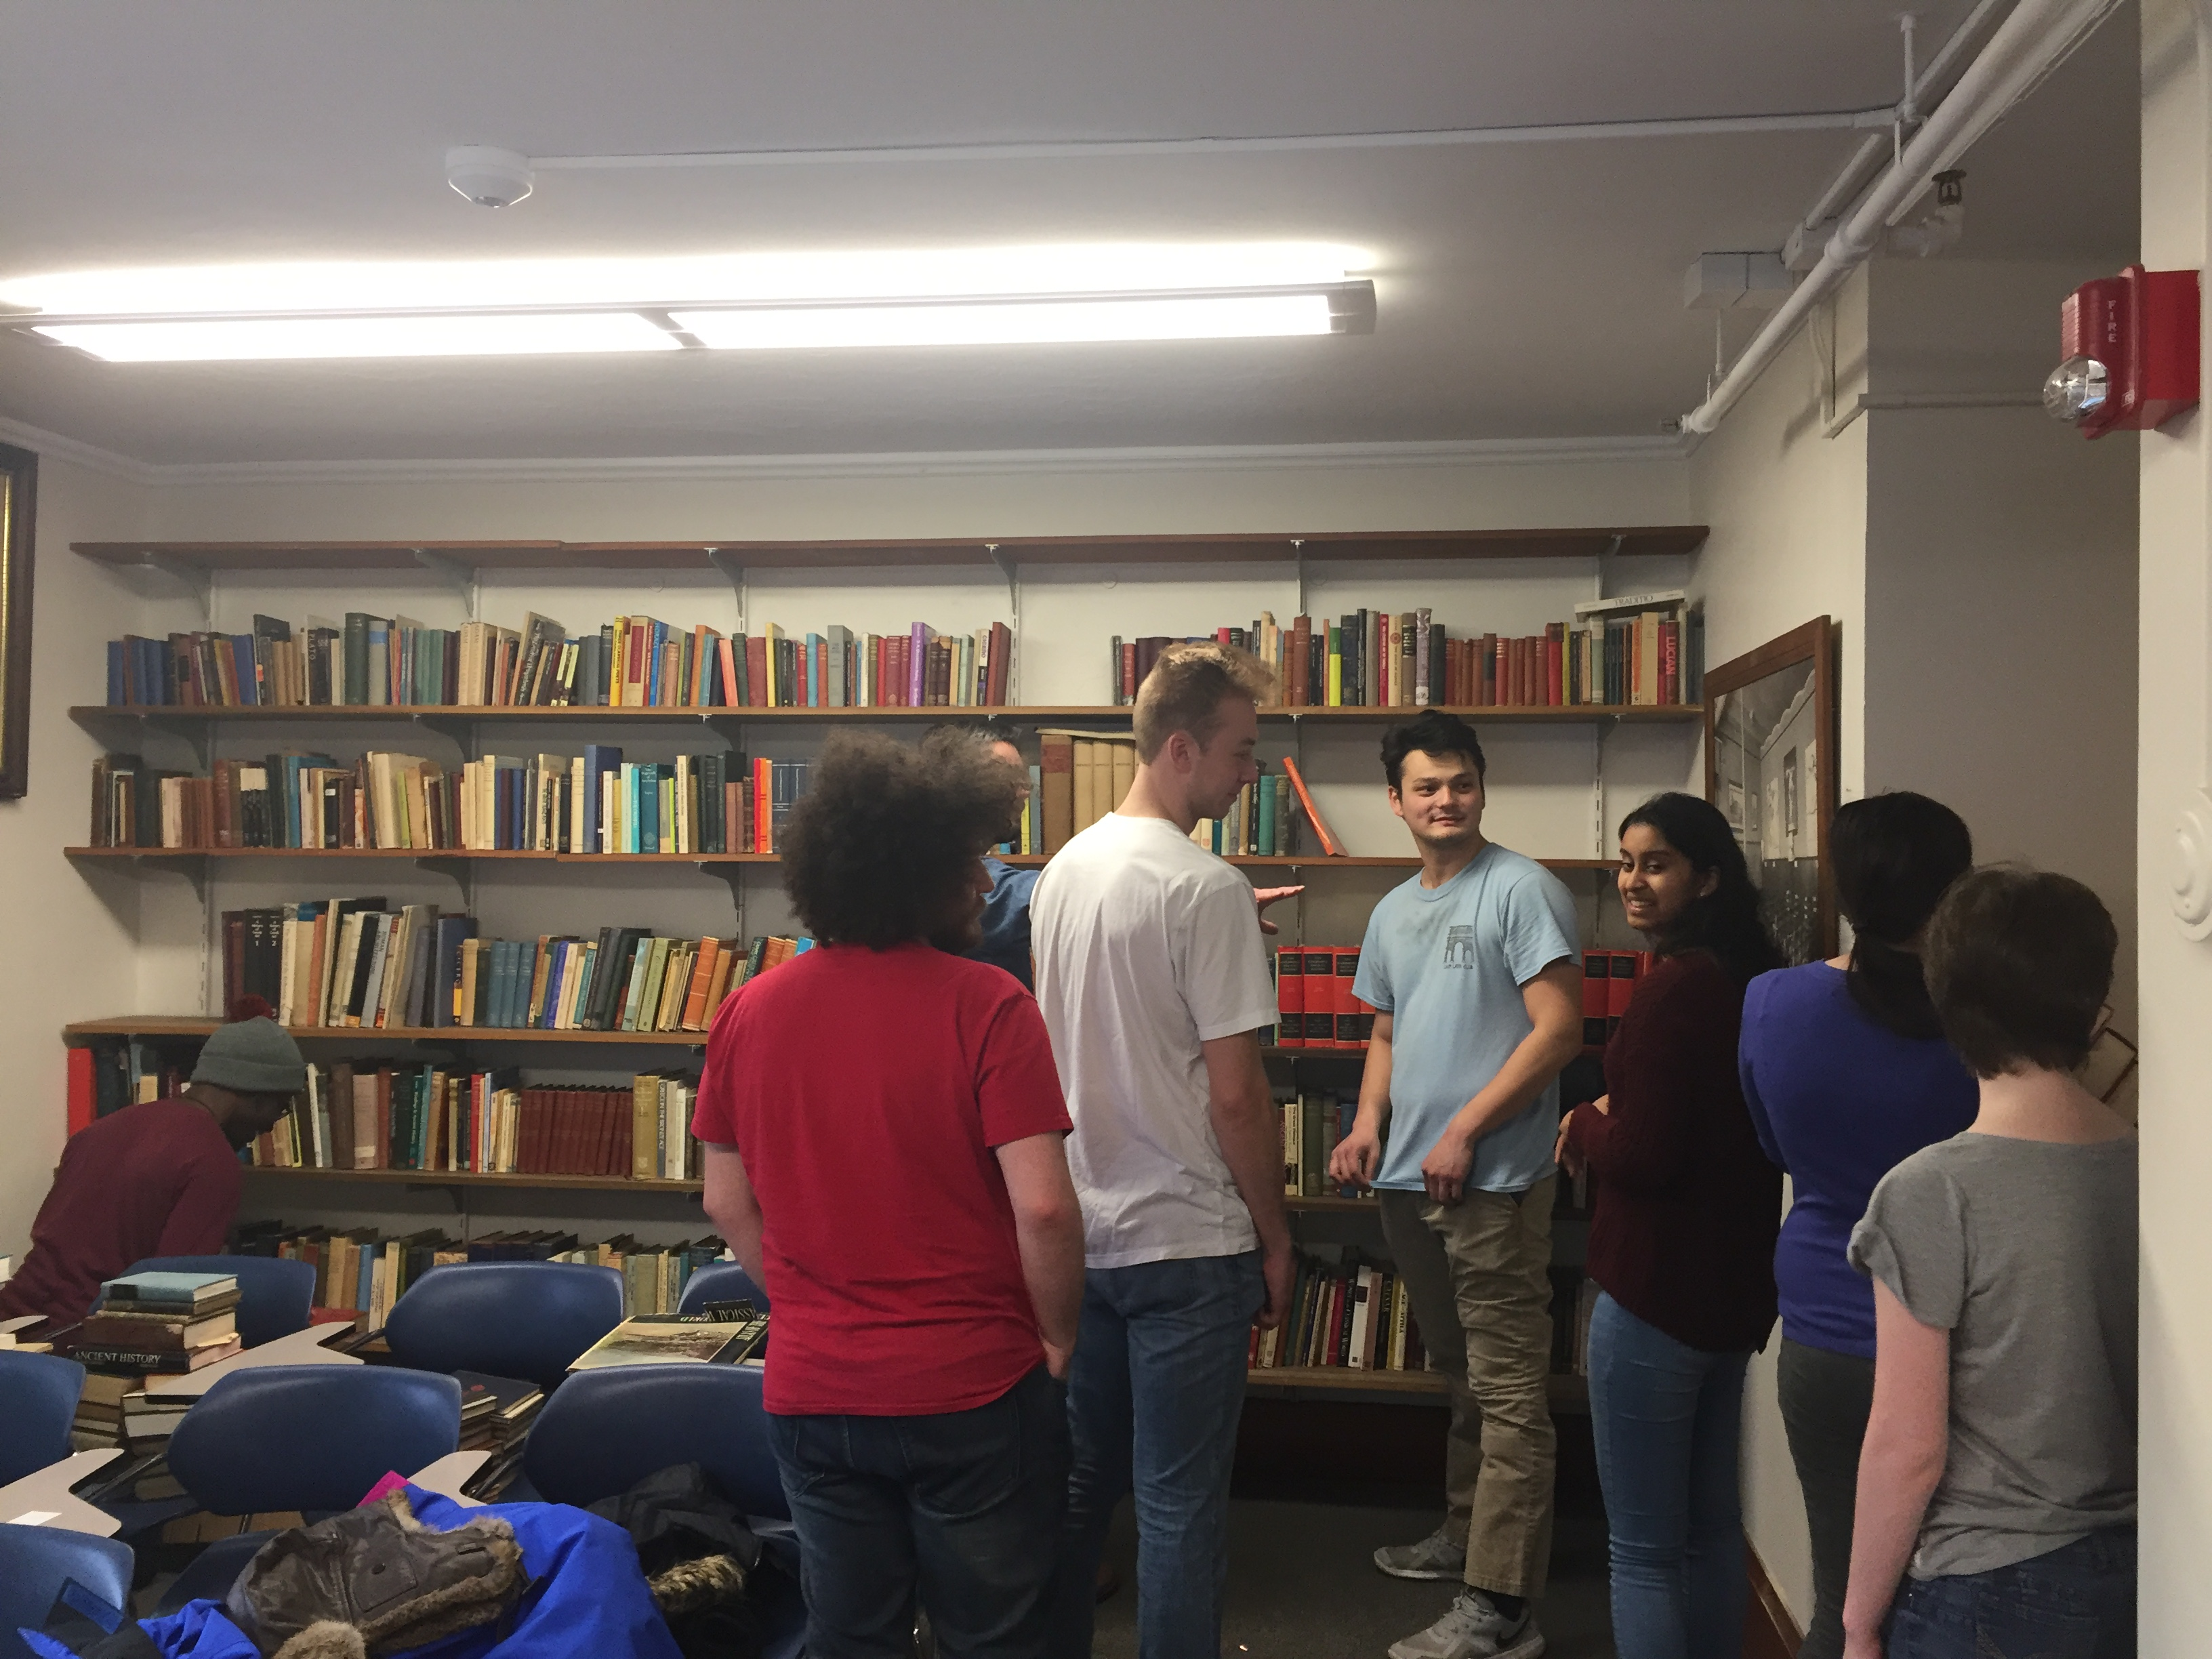 Classics students help organize the department's books (from L to R: Nana Yorke, Adam Doros, Dr. Paul Hay in the back, Colin Hawkinson, Joshua Breckenridge, Asha Ravichadran, Dominica Rollins, and Justine Boyle).